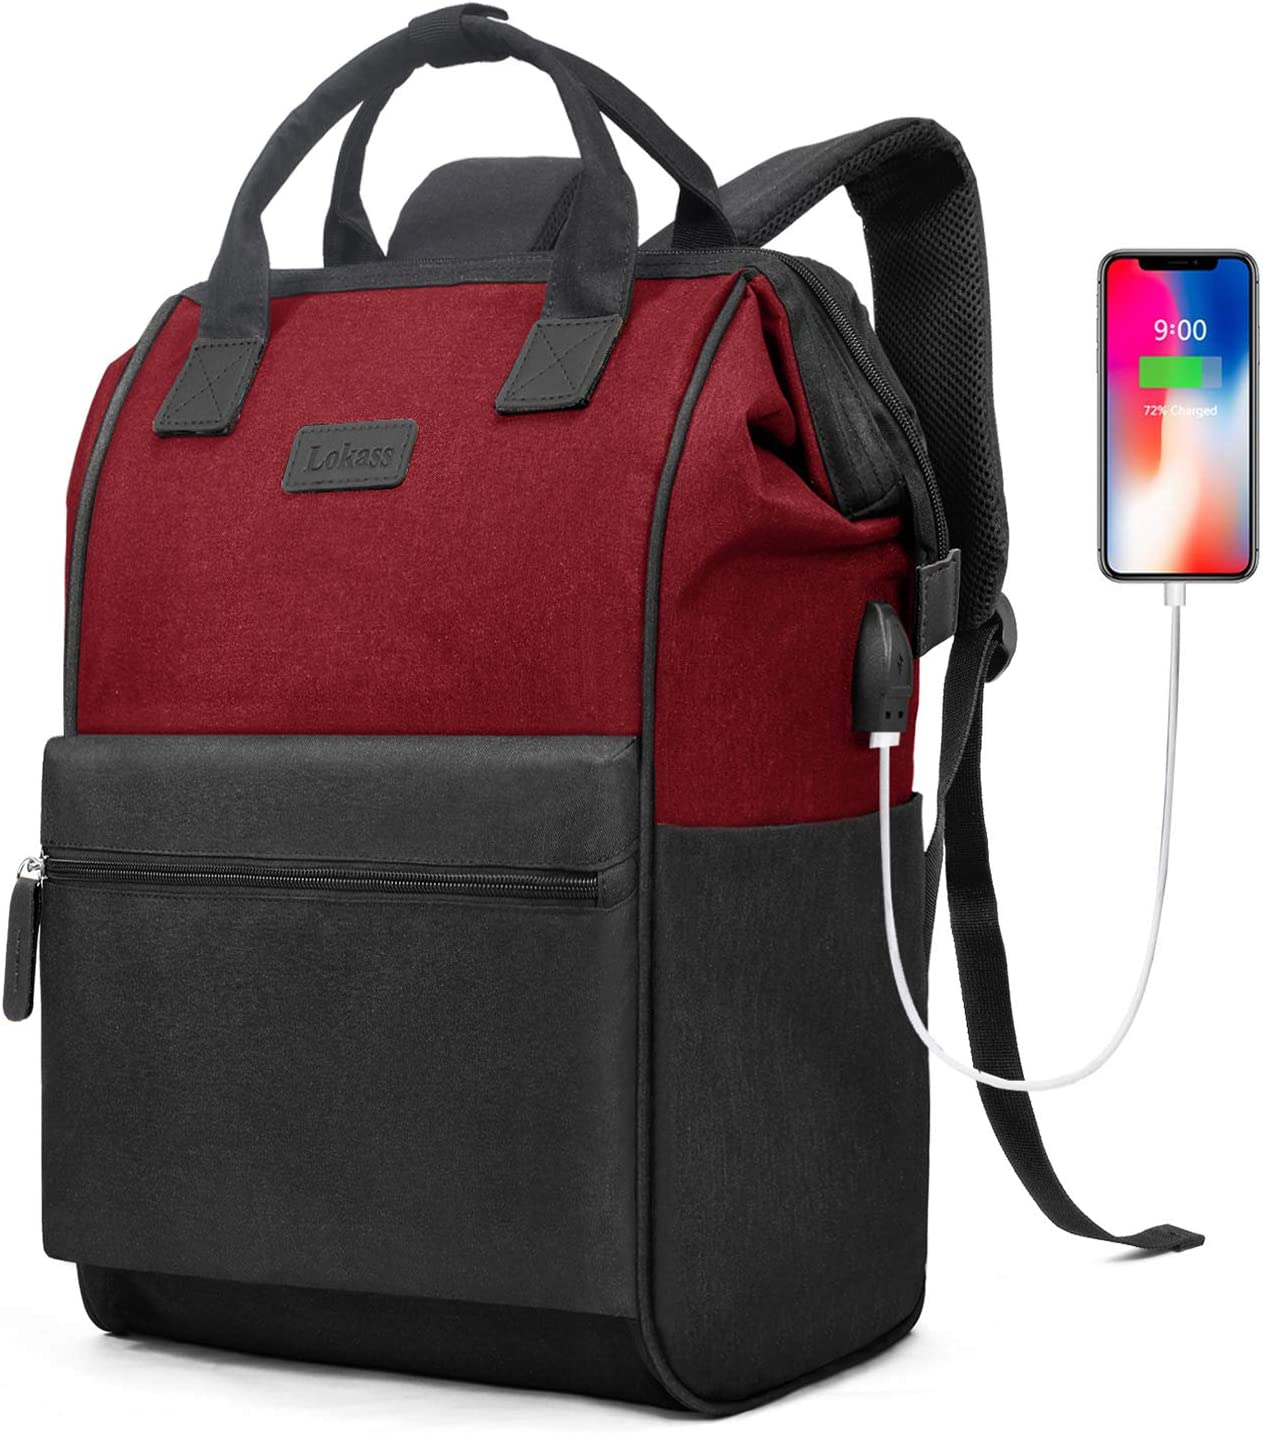 BRINCH Laptop Backpack 15.6 Inch Wide Open Computer Backpack Laptop Bag College Rucksack Water Resistant Business Travel Backpack Casual Daypack with USB Charging Port for Women Men,Black-Red